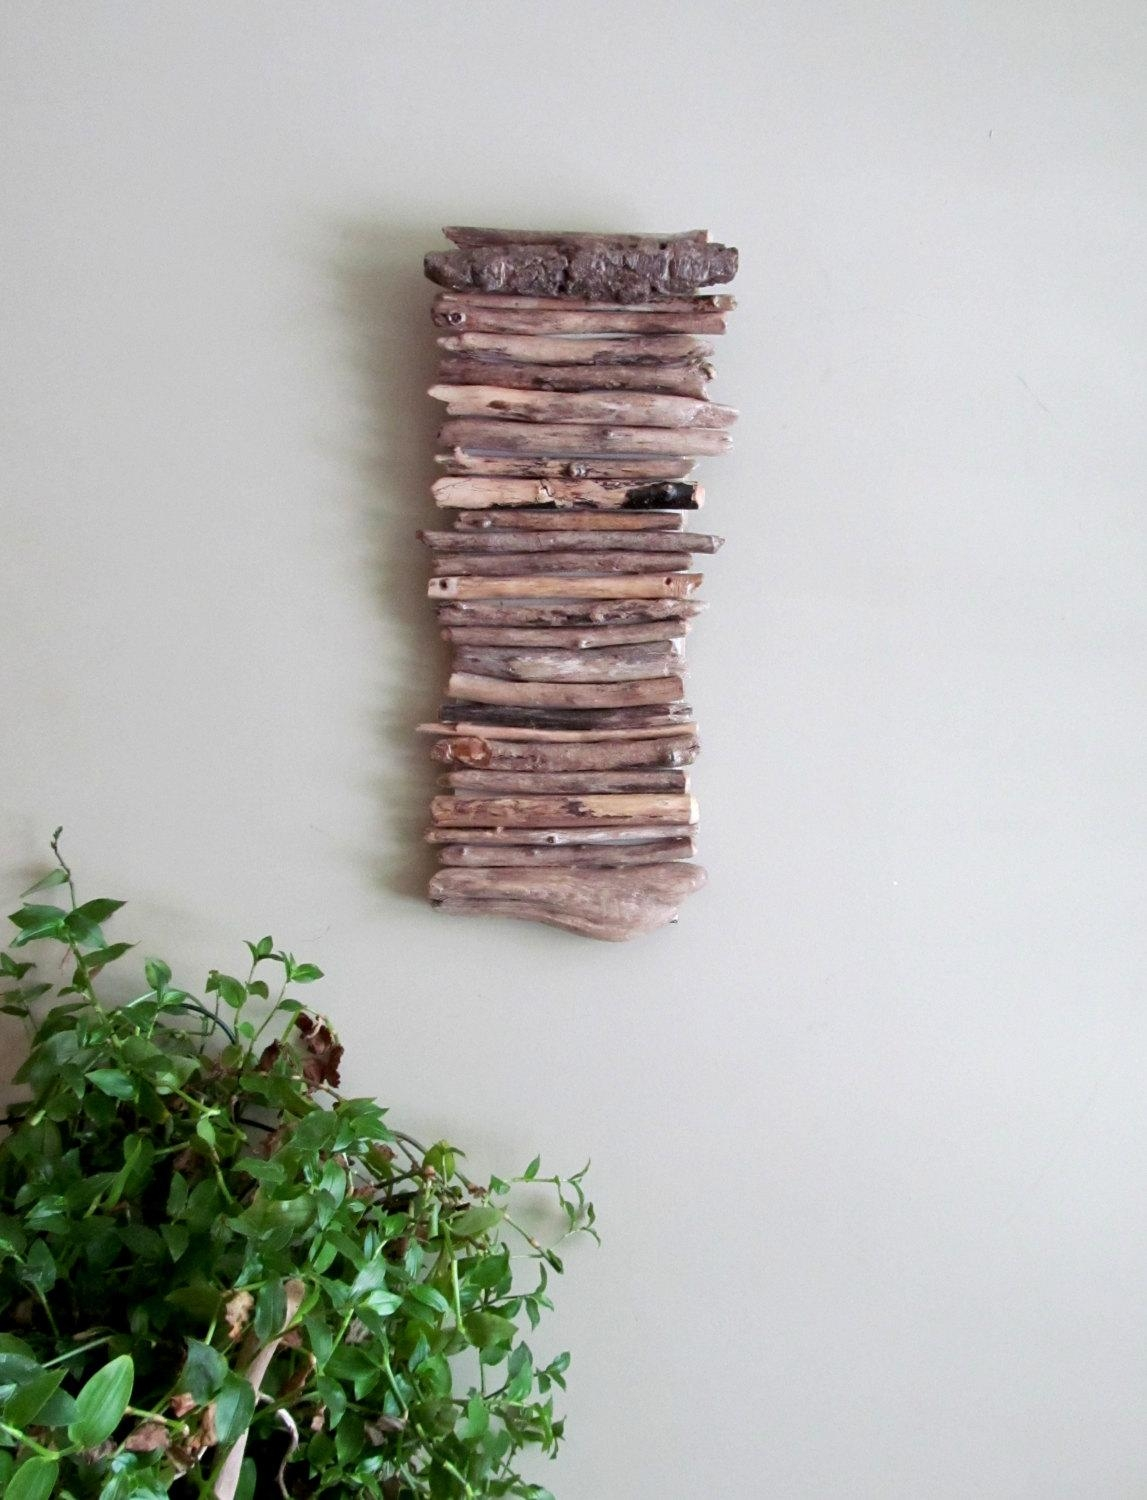 Image Gallery Driftwood Wall Decor - Home Decor Ideas within Driftwood Wall Art for Sale